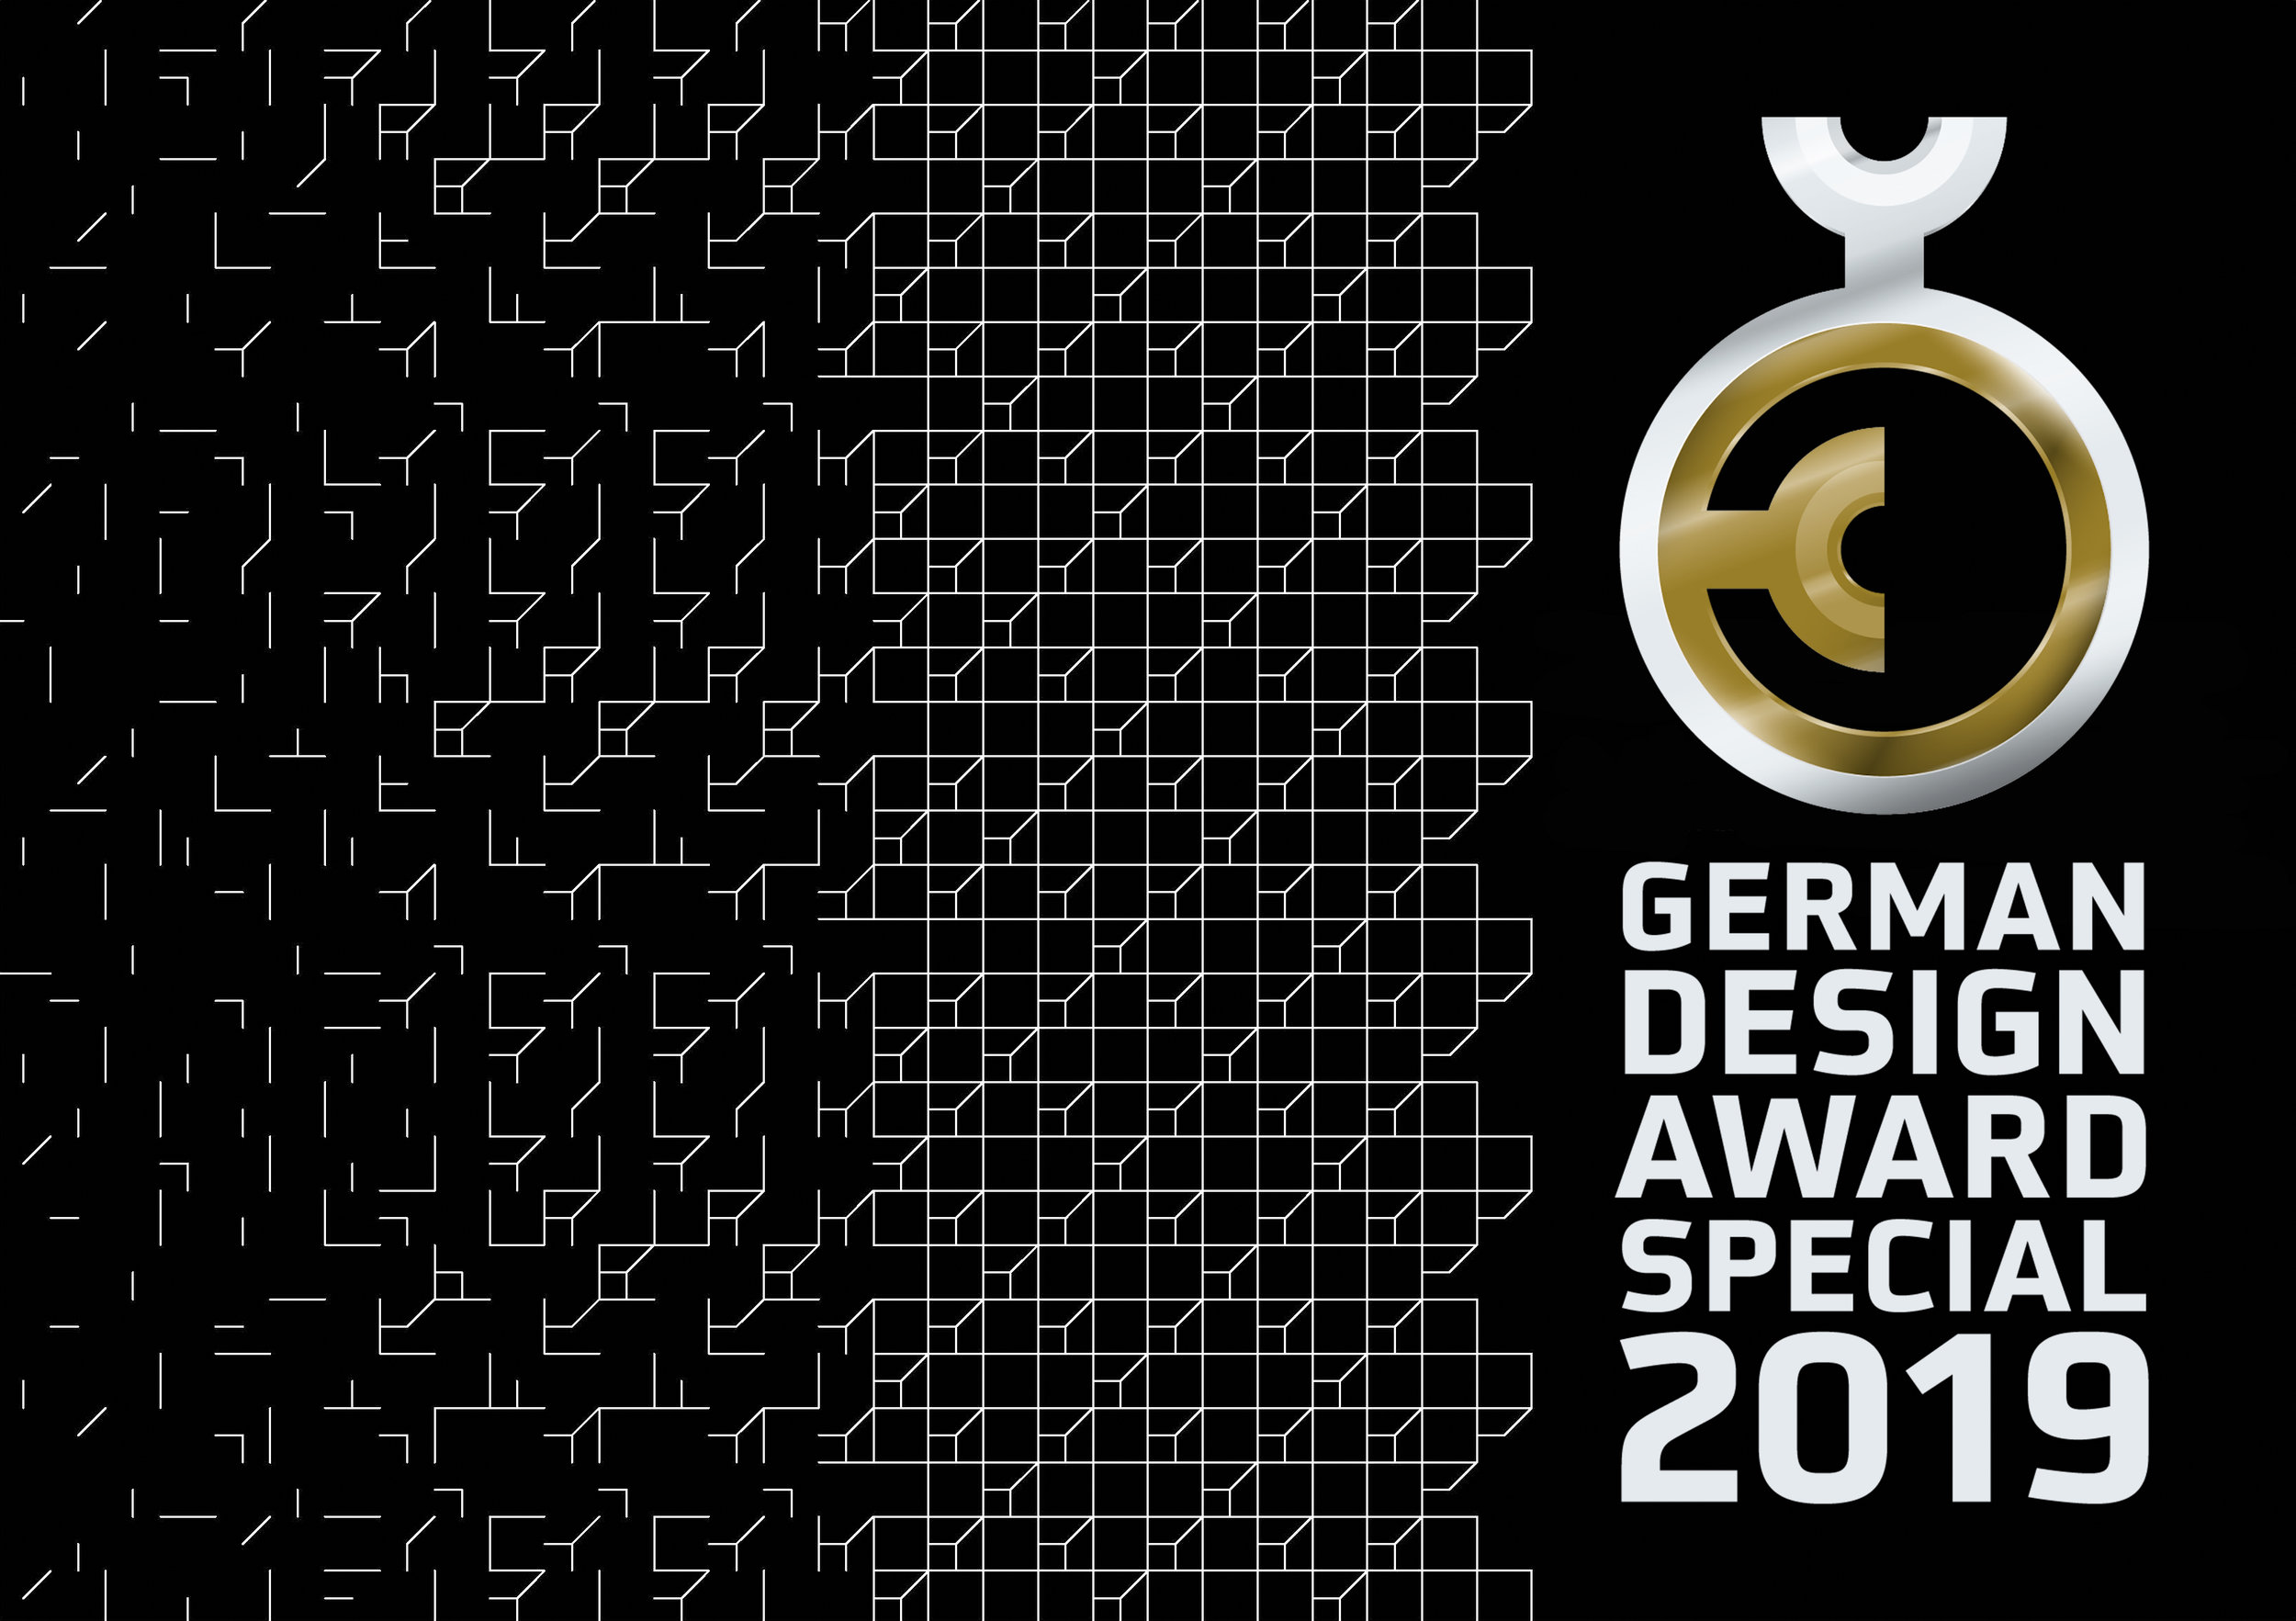 "TWO YEARS IN A ROW AS A NOMINEE AT THE GERMAN DESIGN AWARD, WE ARE ""OVER THE MOON"" FOR THE REASON THAT OUR '""JAZZ UP RESIDENCE"" PROJECT HAS BEEN AWARDED A 2019 SPECIAL MENTION AWARD AT The GERMAN DESIGN AWARD, FRANKFURT GERMANY.  ISSUER: THE GERMAN DESIGN COUNCIL'S INTERNATIONAL PREMIER PRIZE  LINK TO THE GERMAN DESIGN AWARD BELOW:   2019 SPECIAL MENTION AWARD   AWARD CEREMONY IN FEBRUARY 8TH 2019 IN FRANKFURT GERMANY"